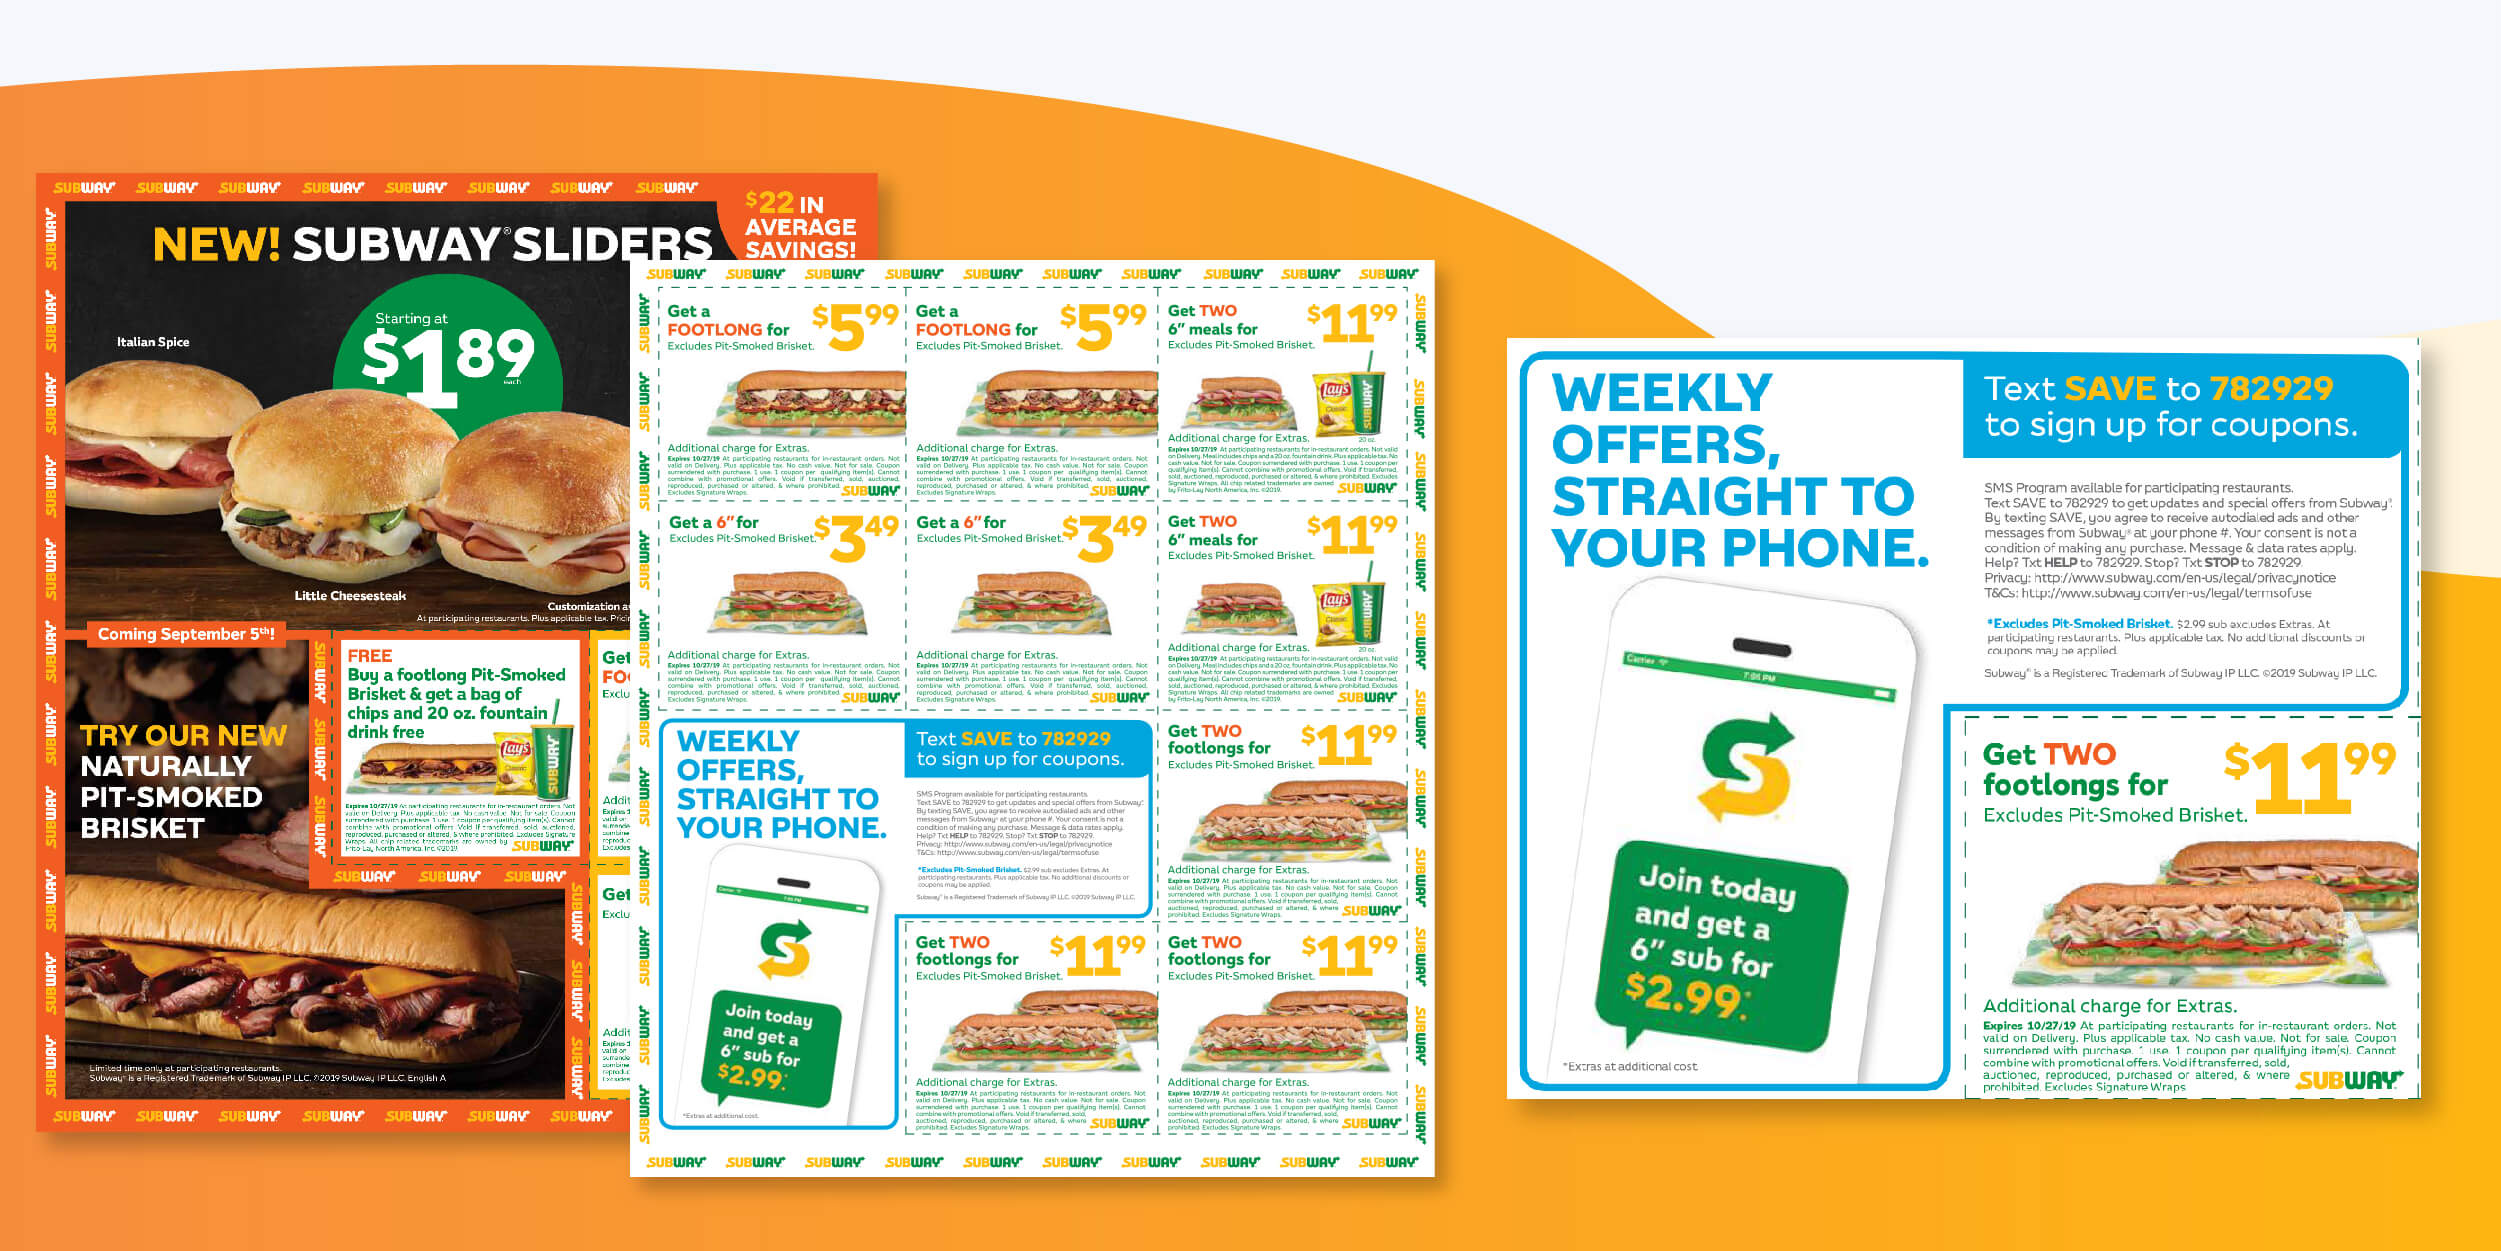 Subway Promoting Their SMS Text Club on a Recent National FSI Campaign